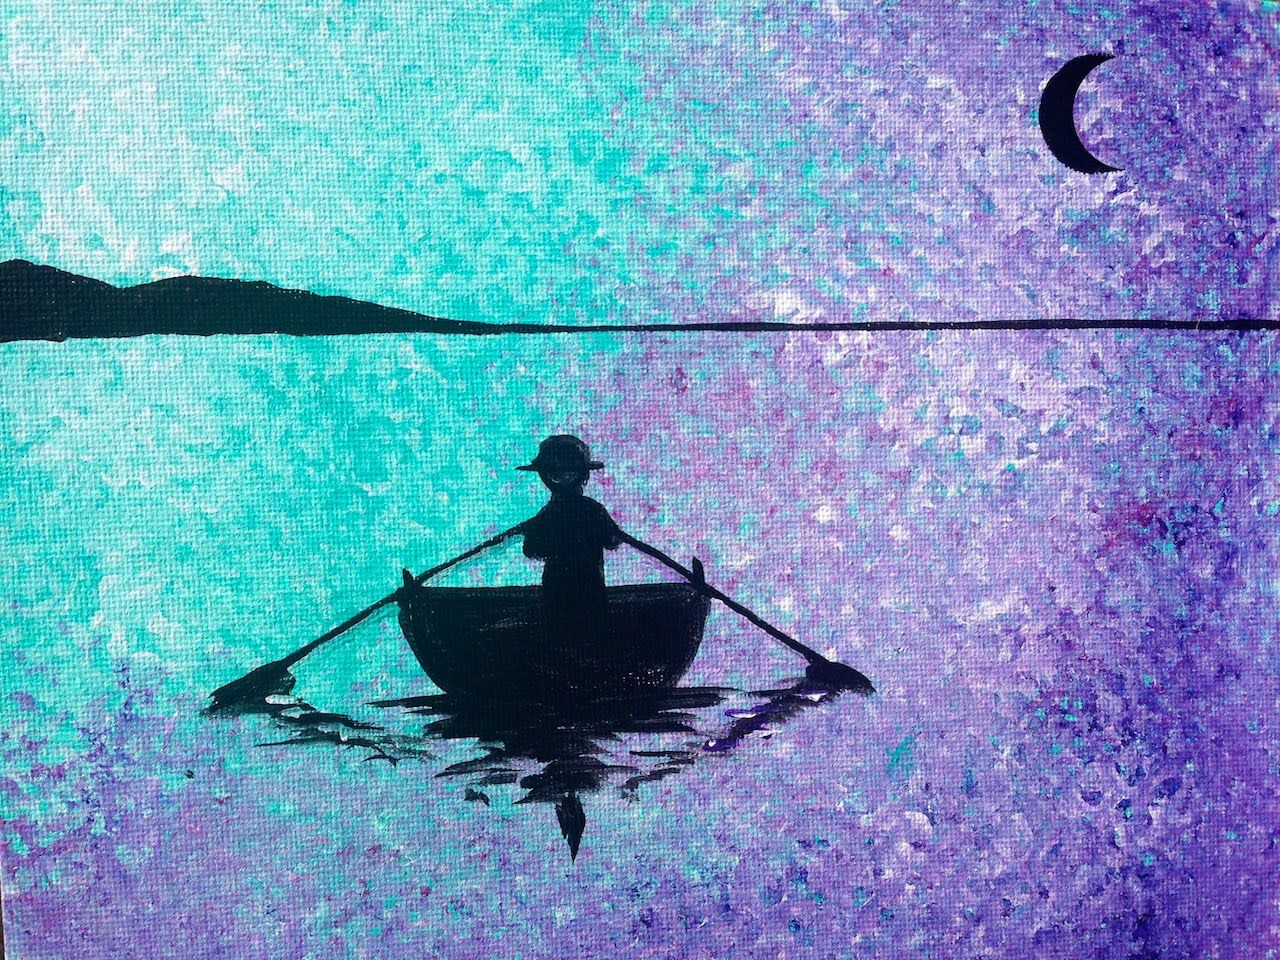 Easy Painting Easy Acrylic Social Painting Row Boat Silhouette Lake